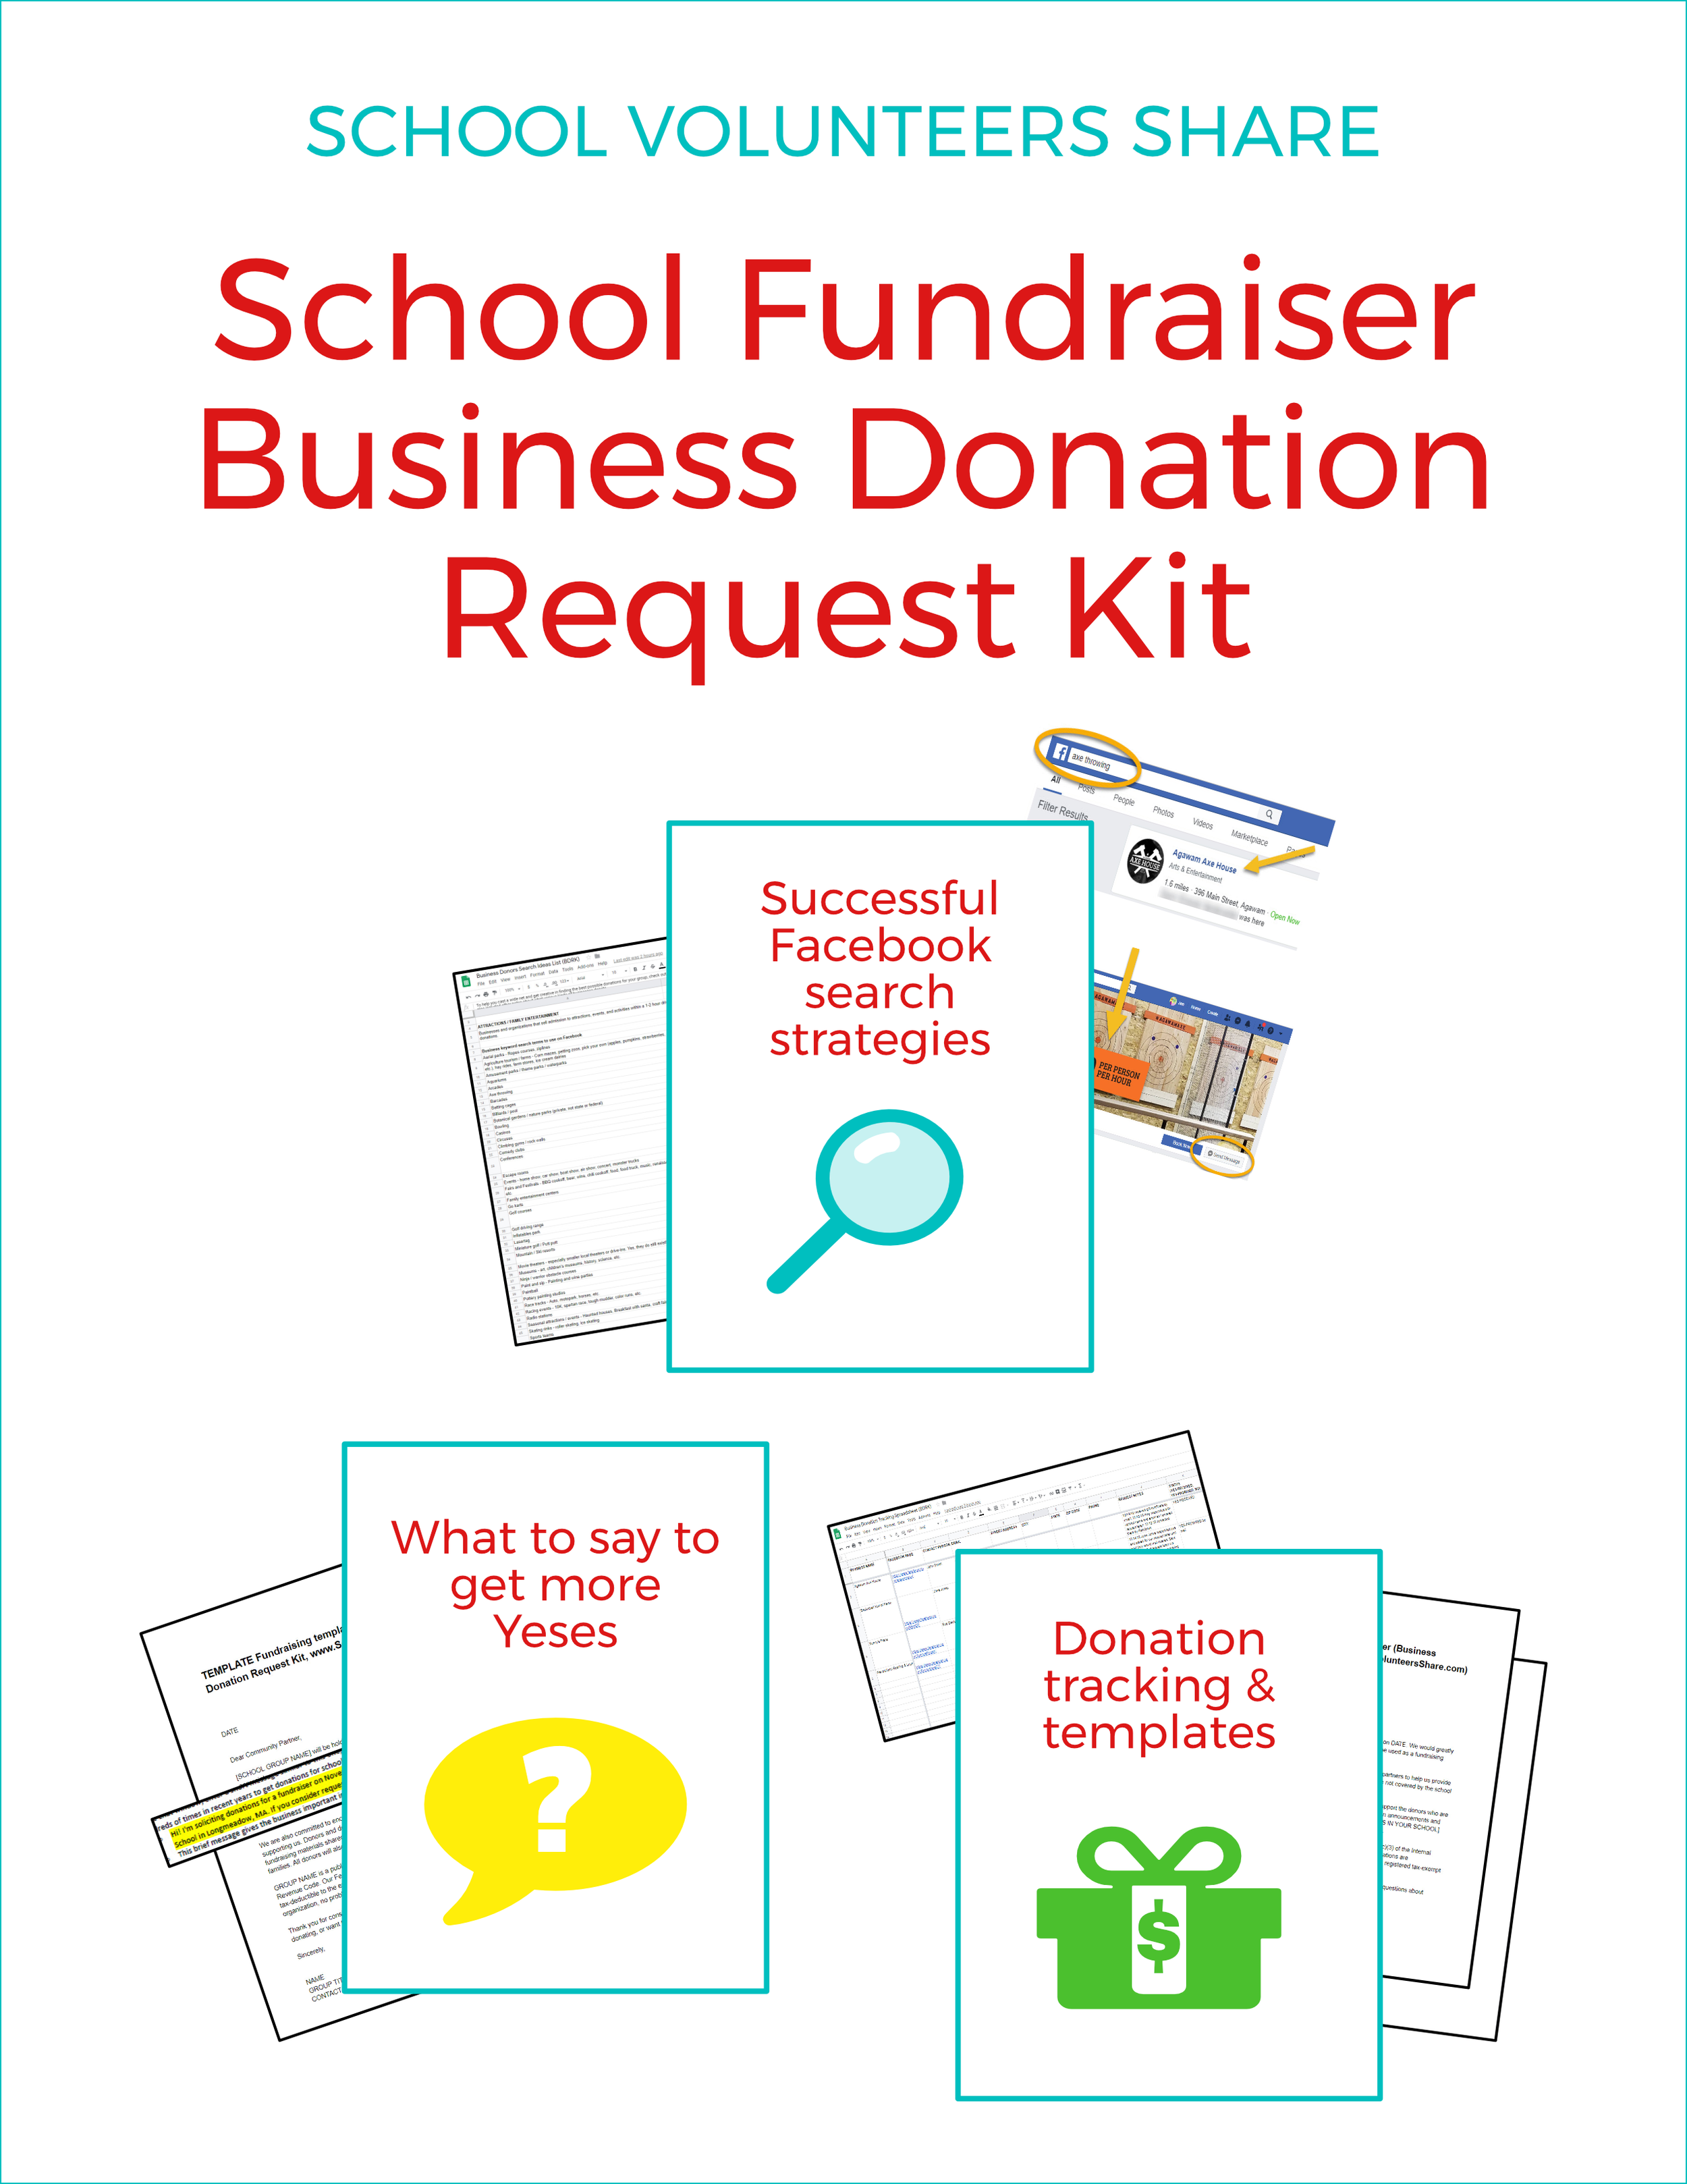 How to Get Donations from Local Businesses for School